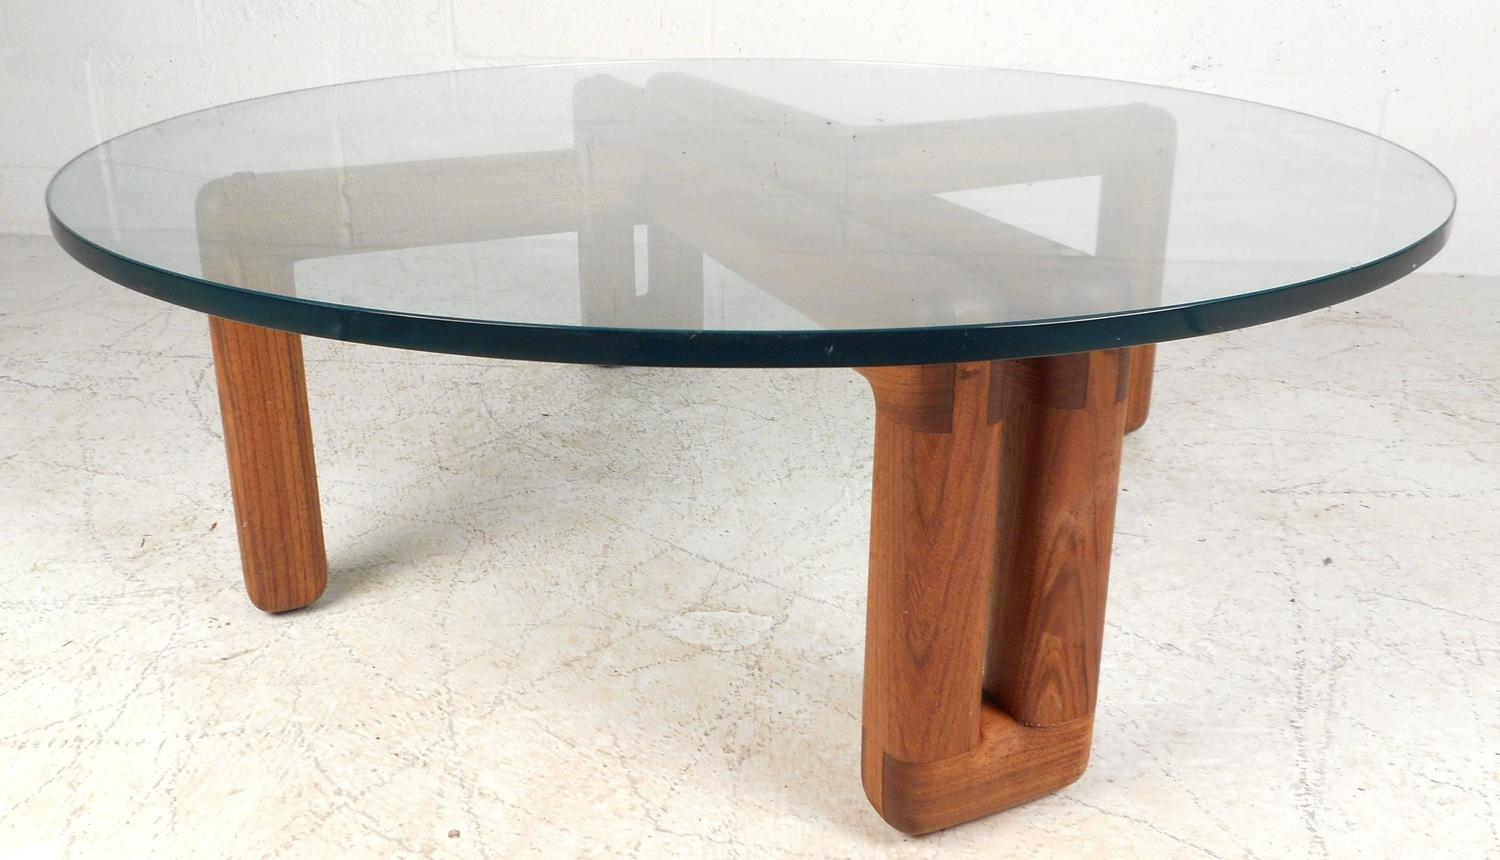 Mid century modern round glass coffee table for sale at for Round glass coffee tables for sale